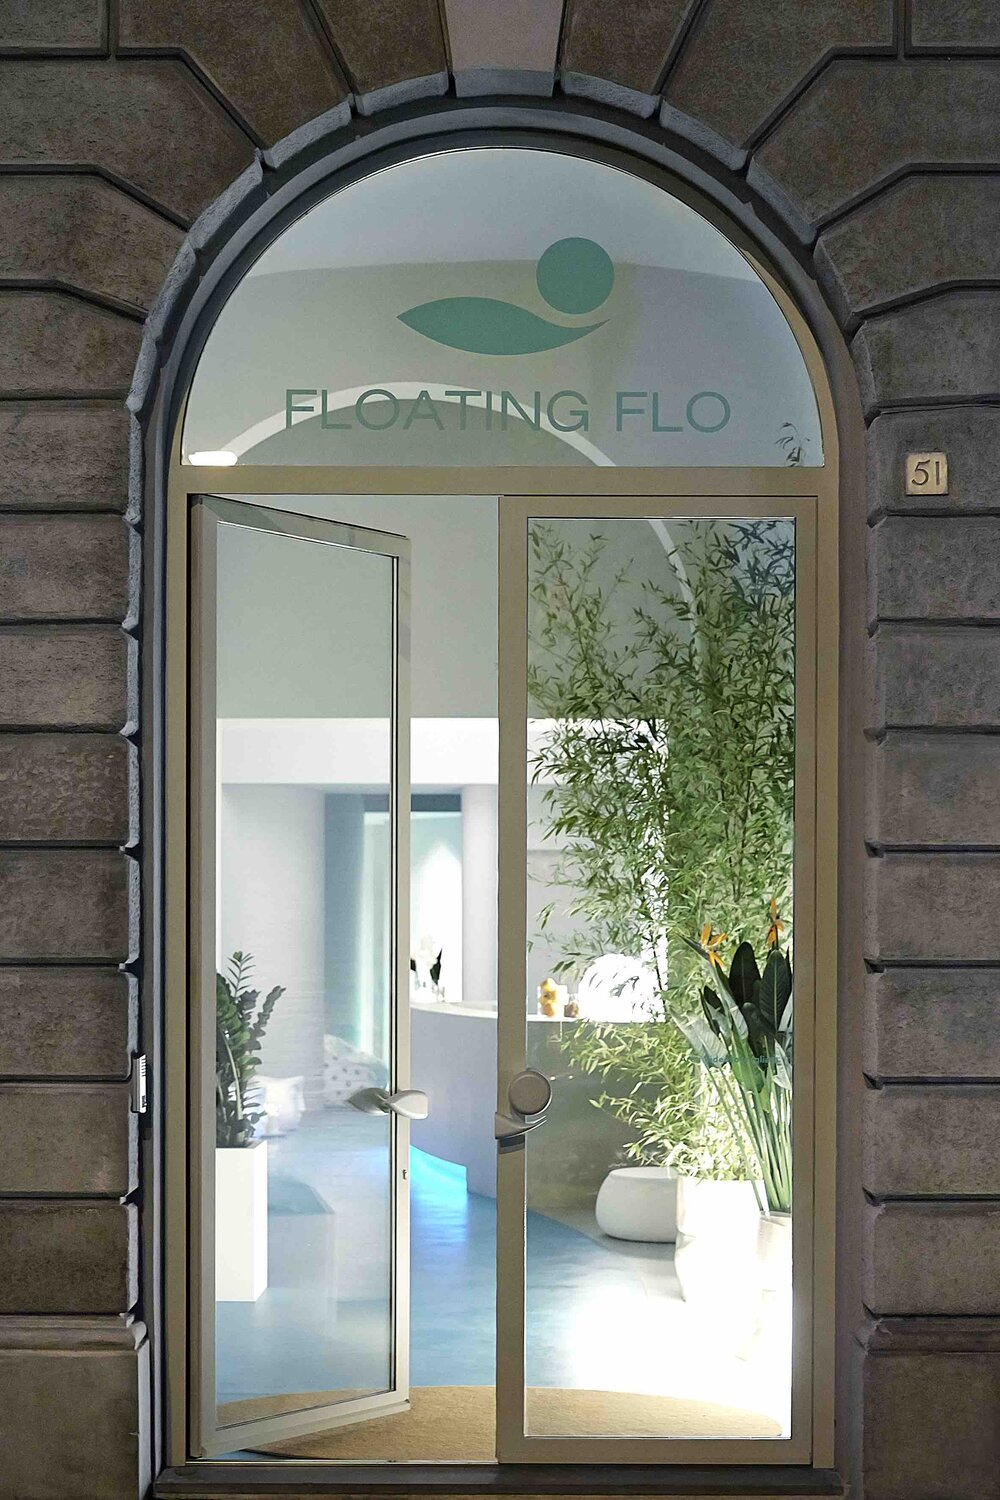 Benvenuti a Floating Flo